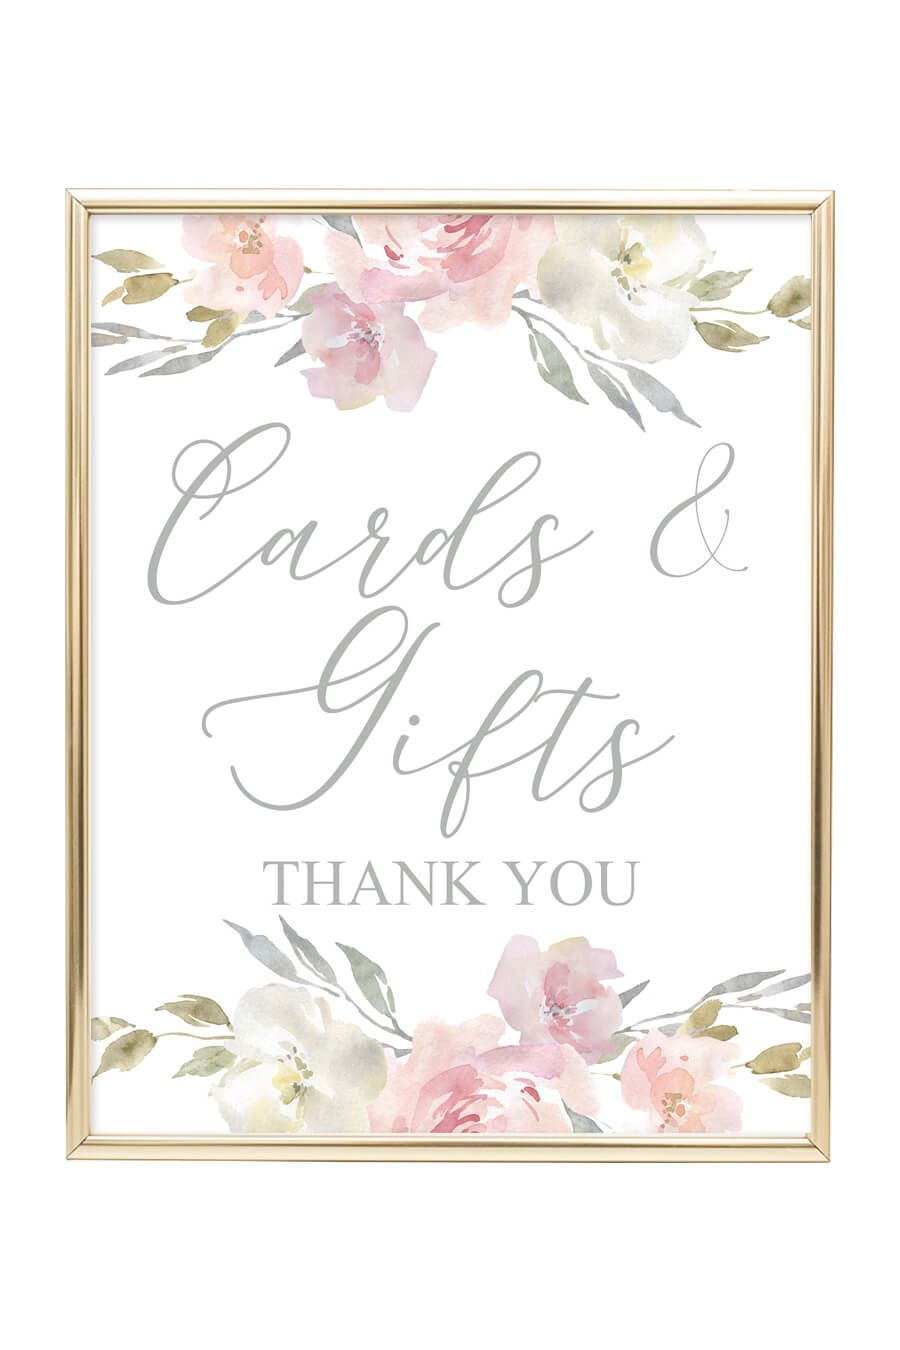 Free Printables - Download Over 700 Free Printable Files - Cards Sign Free Printable